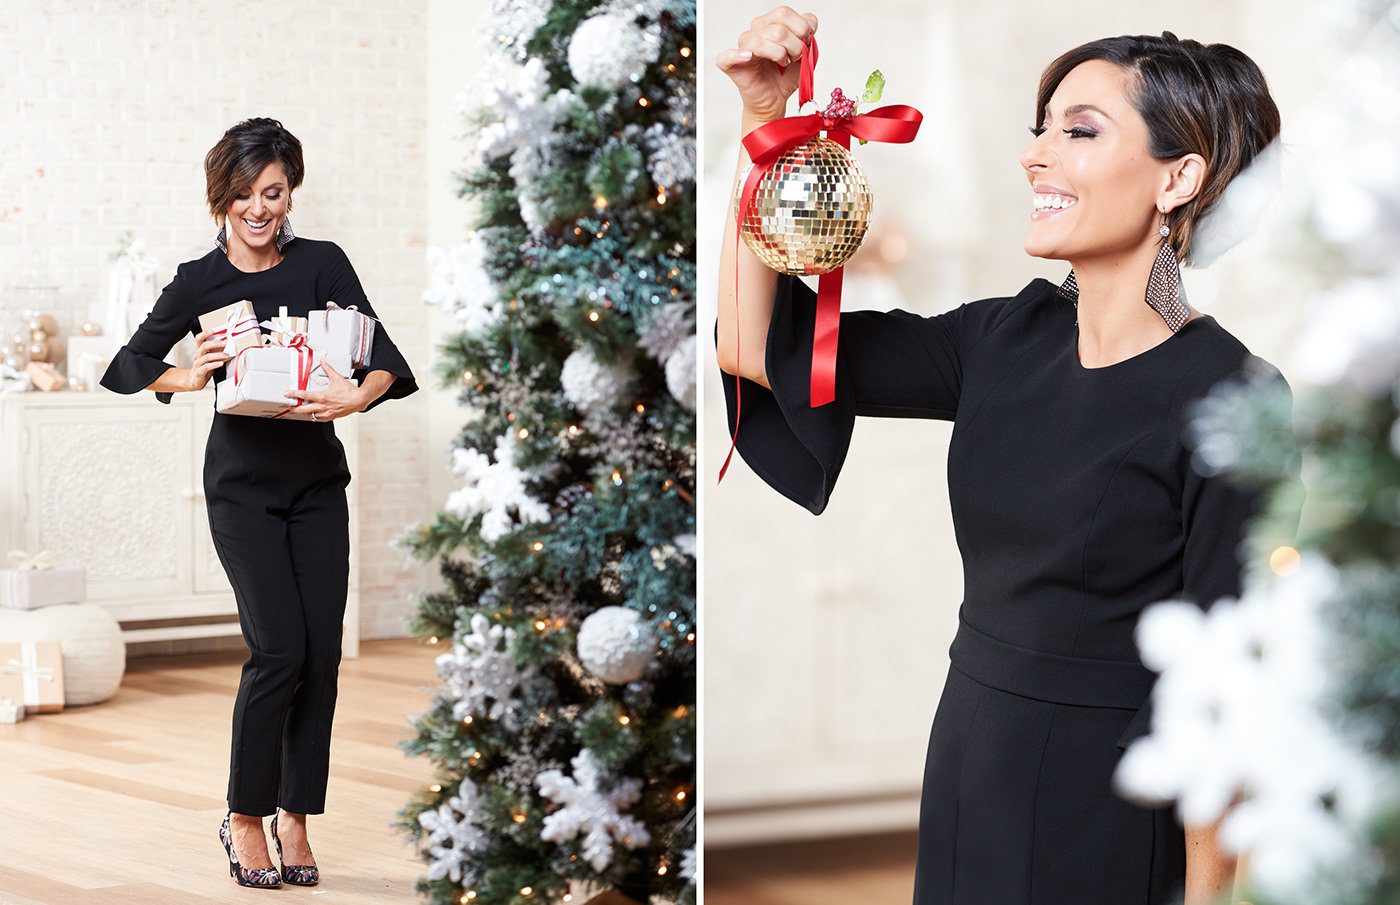 Photoshoot Direction Xmas Qvc Hosts By Stephanie White At Coroflotcom